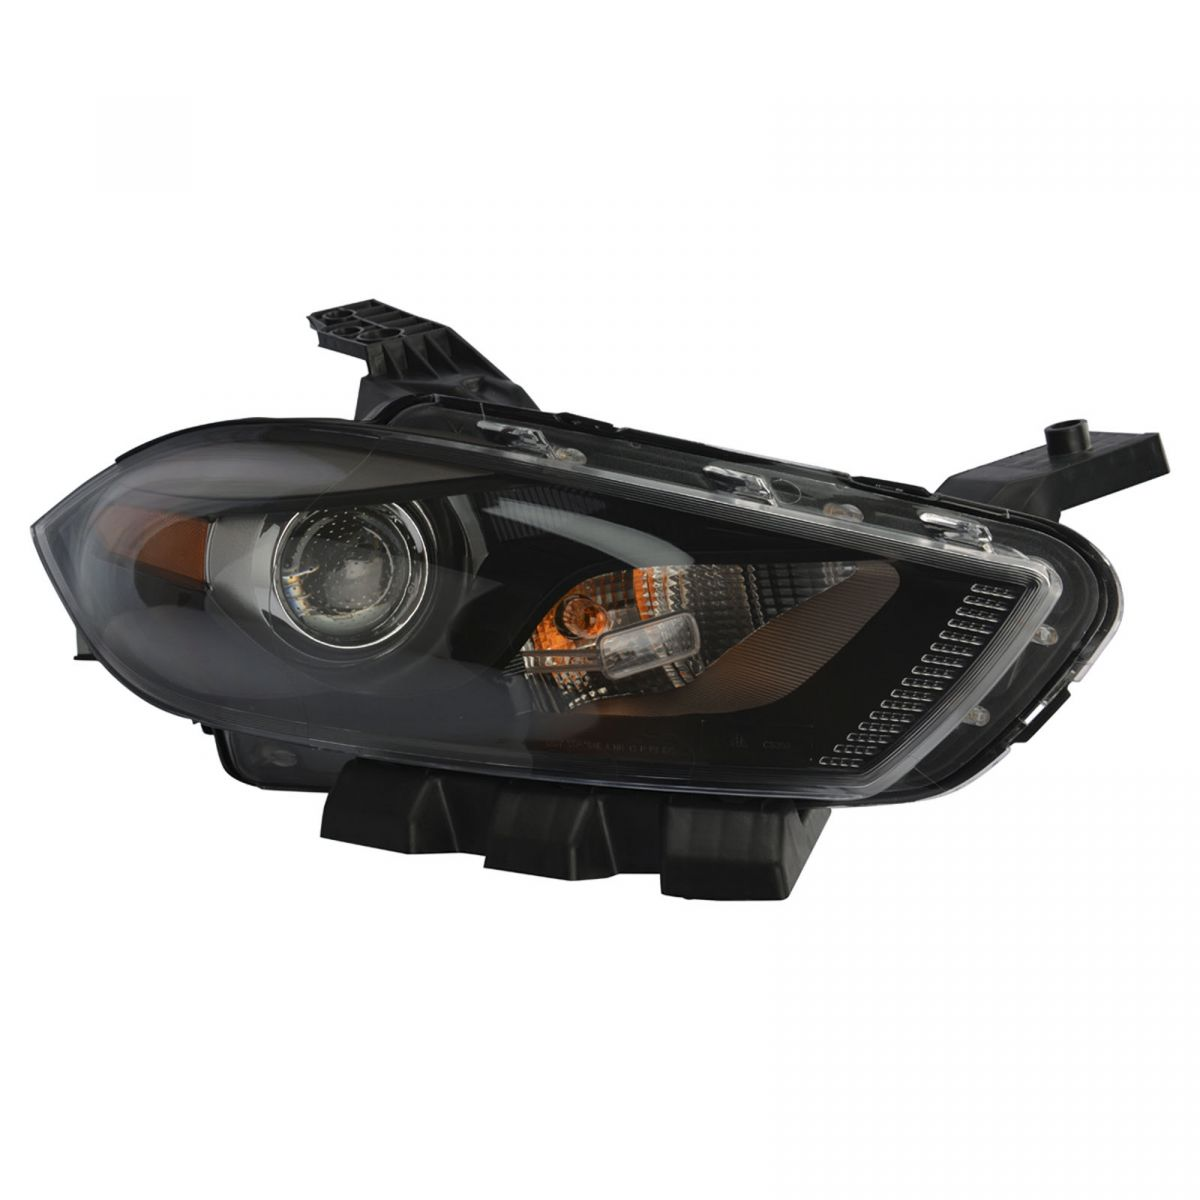 FOR 2005 SATURN VUE New Replacement Headlight Assembly RH